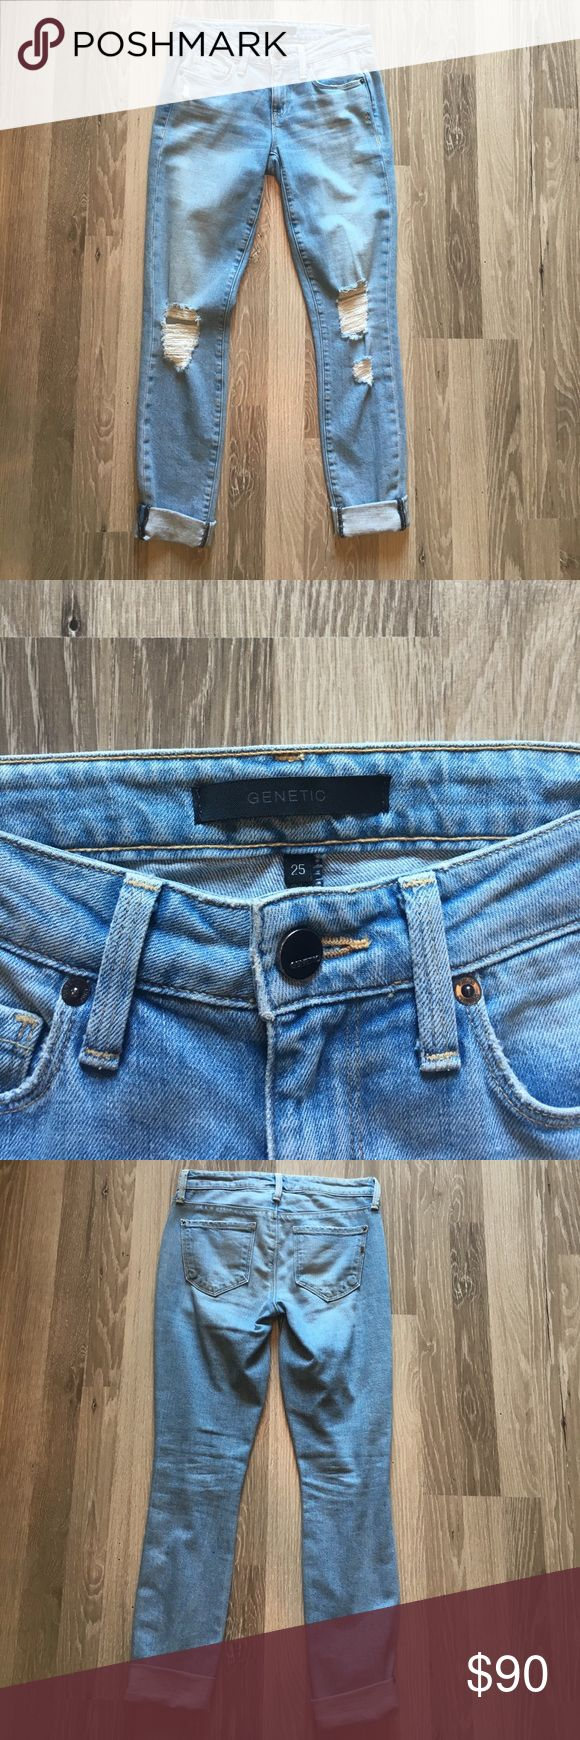 Genetic Denim Shya Jeans size 25 Genetic jeans size 25, only worn a few times, in excellent condition. No stains! These are great pants, just too big on me unfortunately! Genetic Denim Pants Skinny